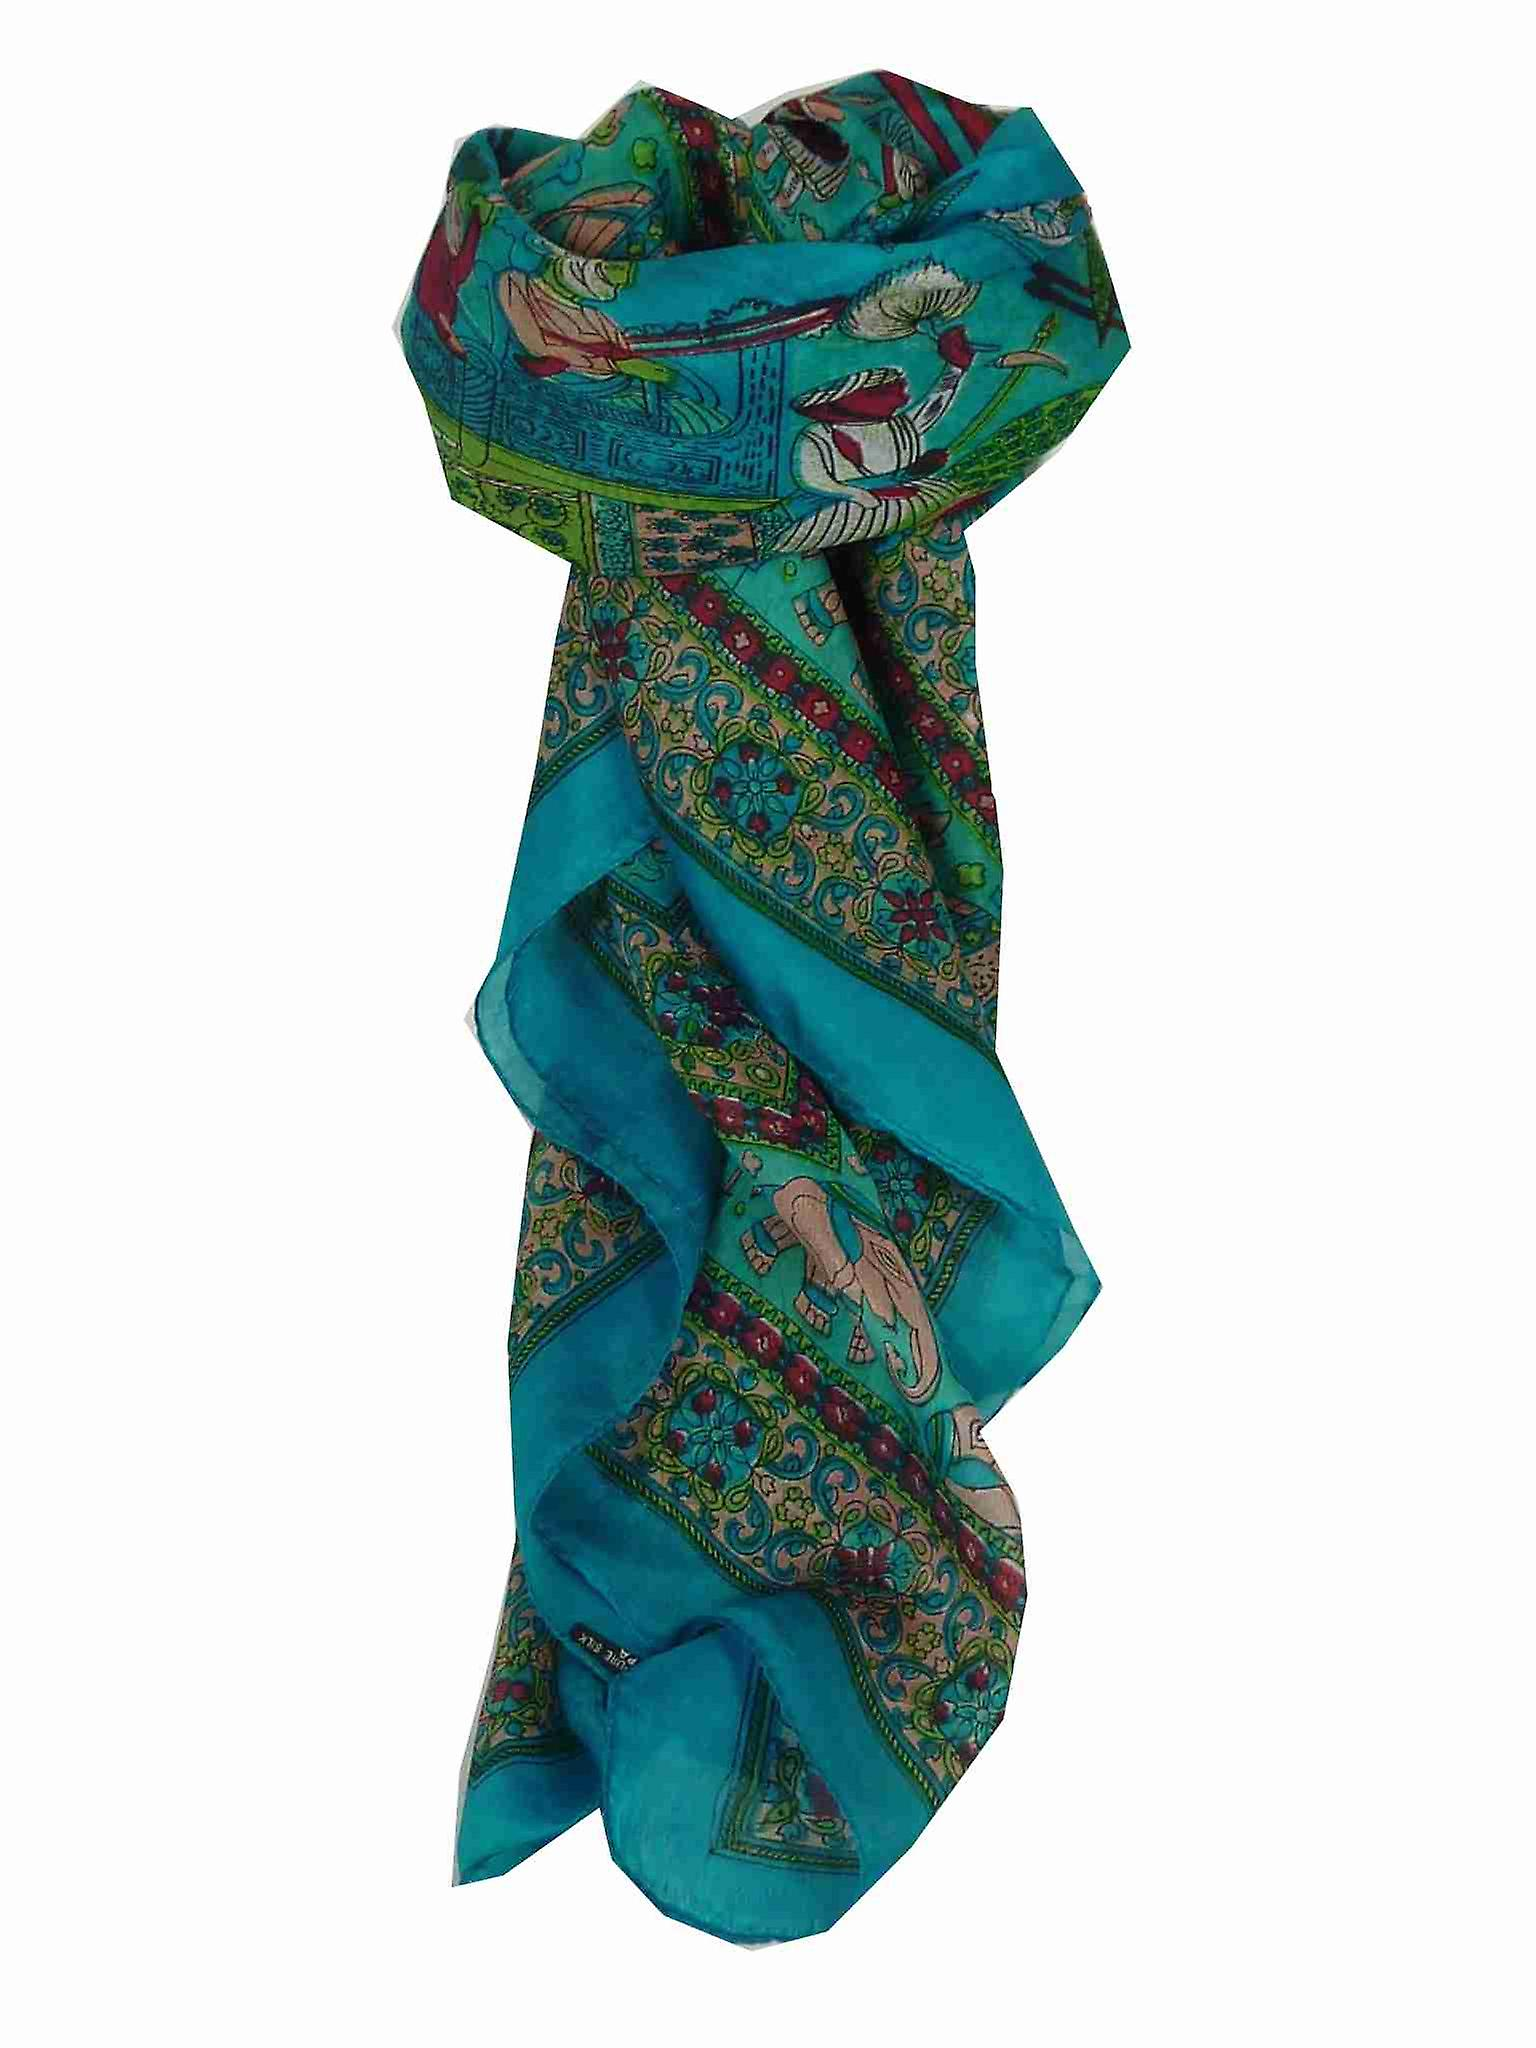 Mulberry Silk Traditional Square Scarf Farrin Aquamarine by Pashmina & Silk